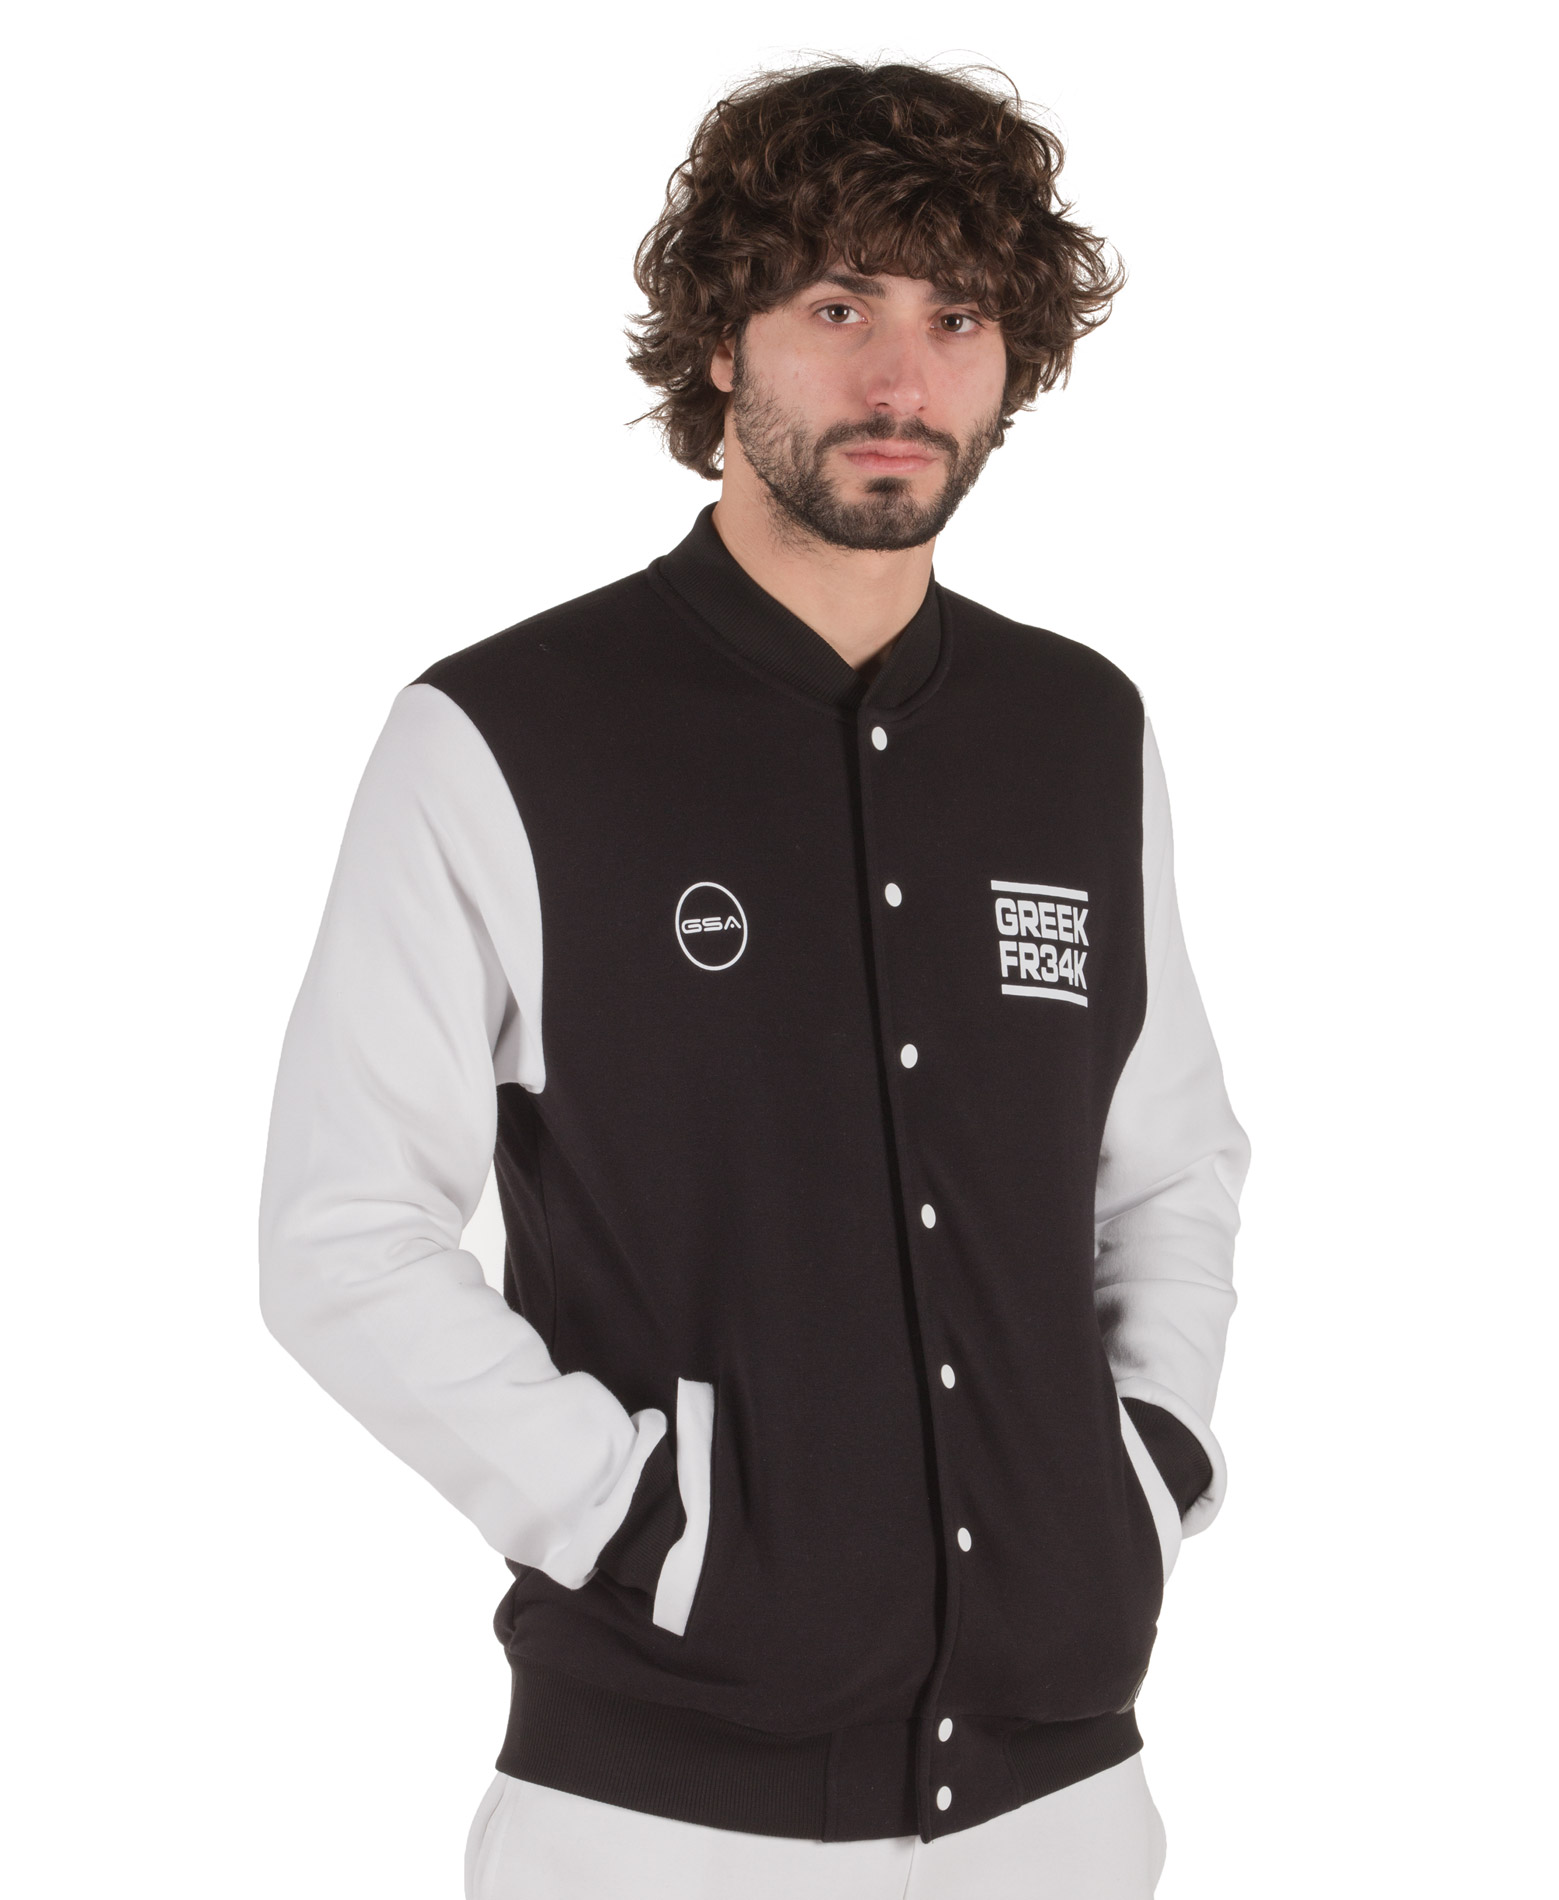 GSA X GREEK FREAK COLLEGE JACKET 34-18012-01 JET BLACK Μαύρο